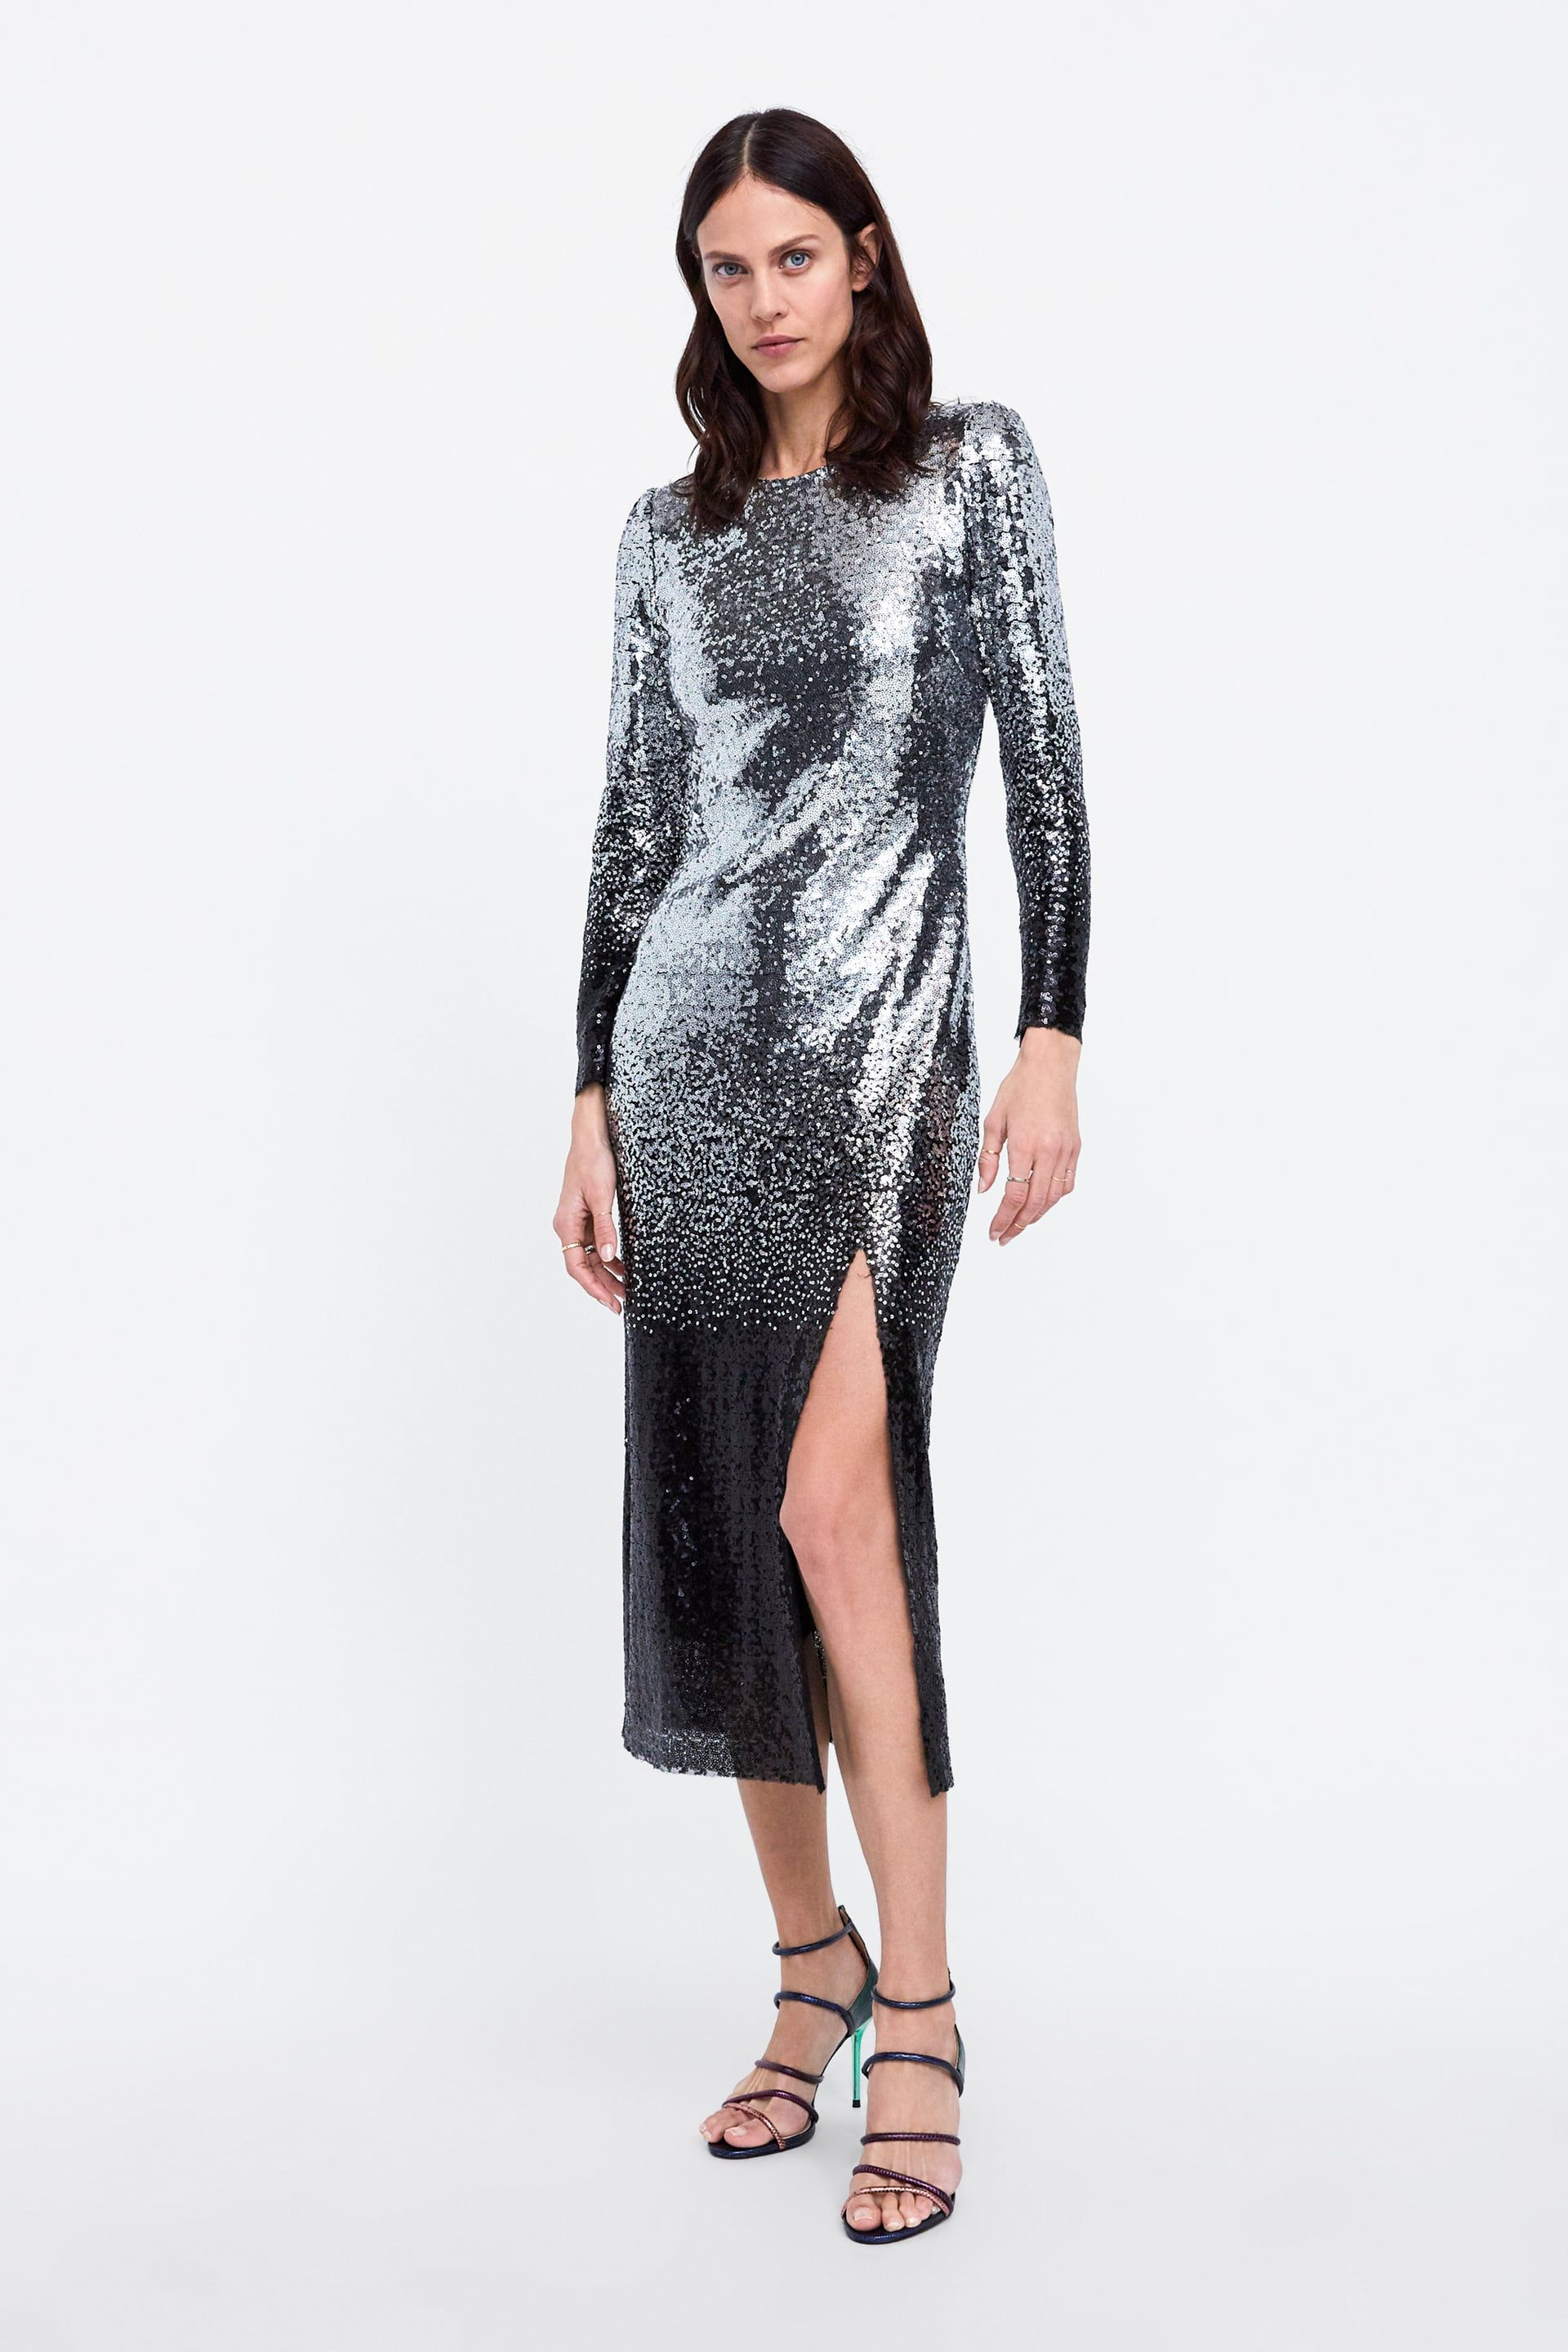 a37cace7 Image 1 of OMBRÉ SEQUIN DRESS from Zara | F A N C Y | Dresses ...